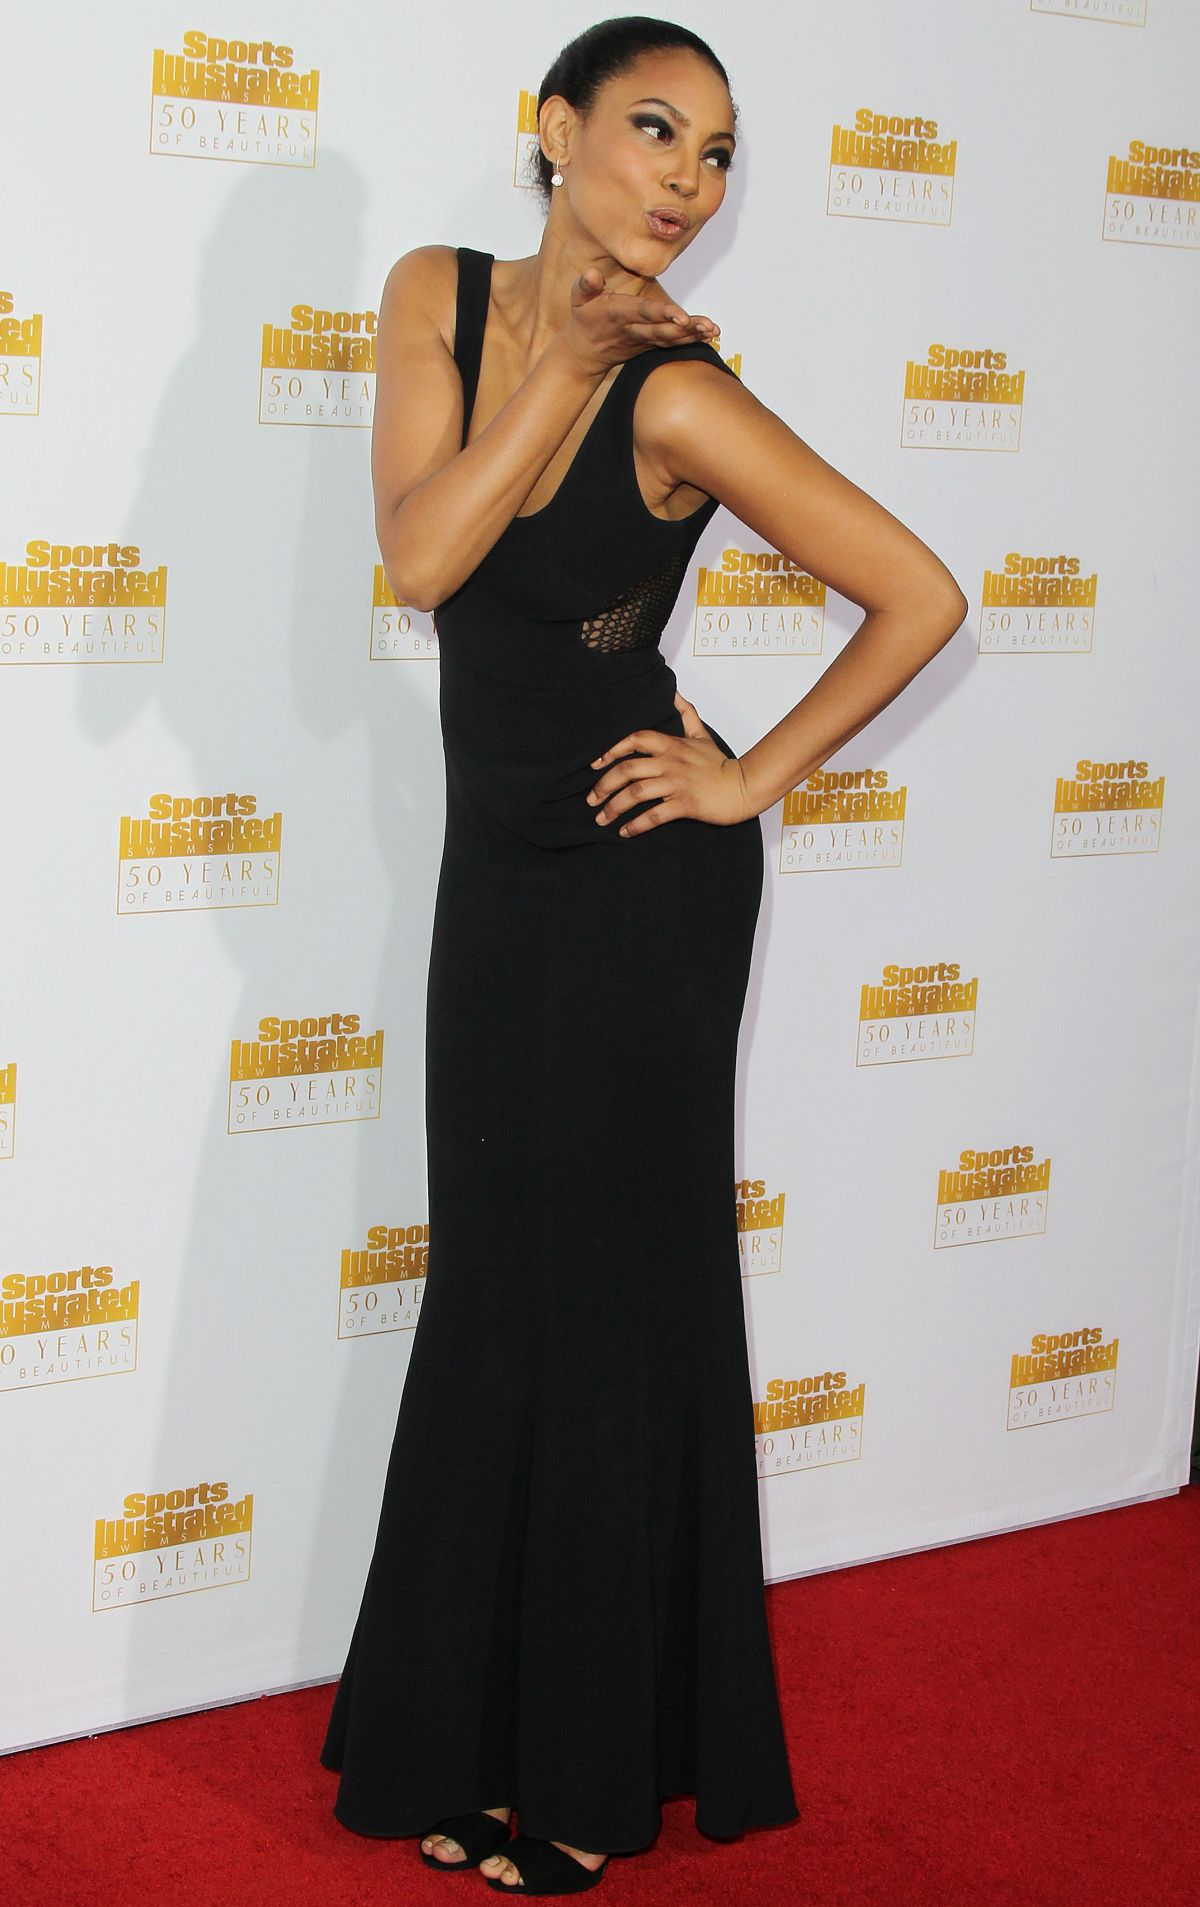 ARIEL MEREDITH at SI Swimsuit Issue 50th Anniversary Celebration in Hollywood